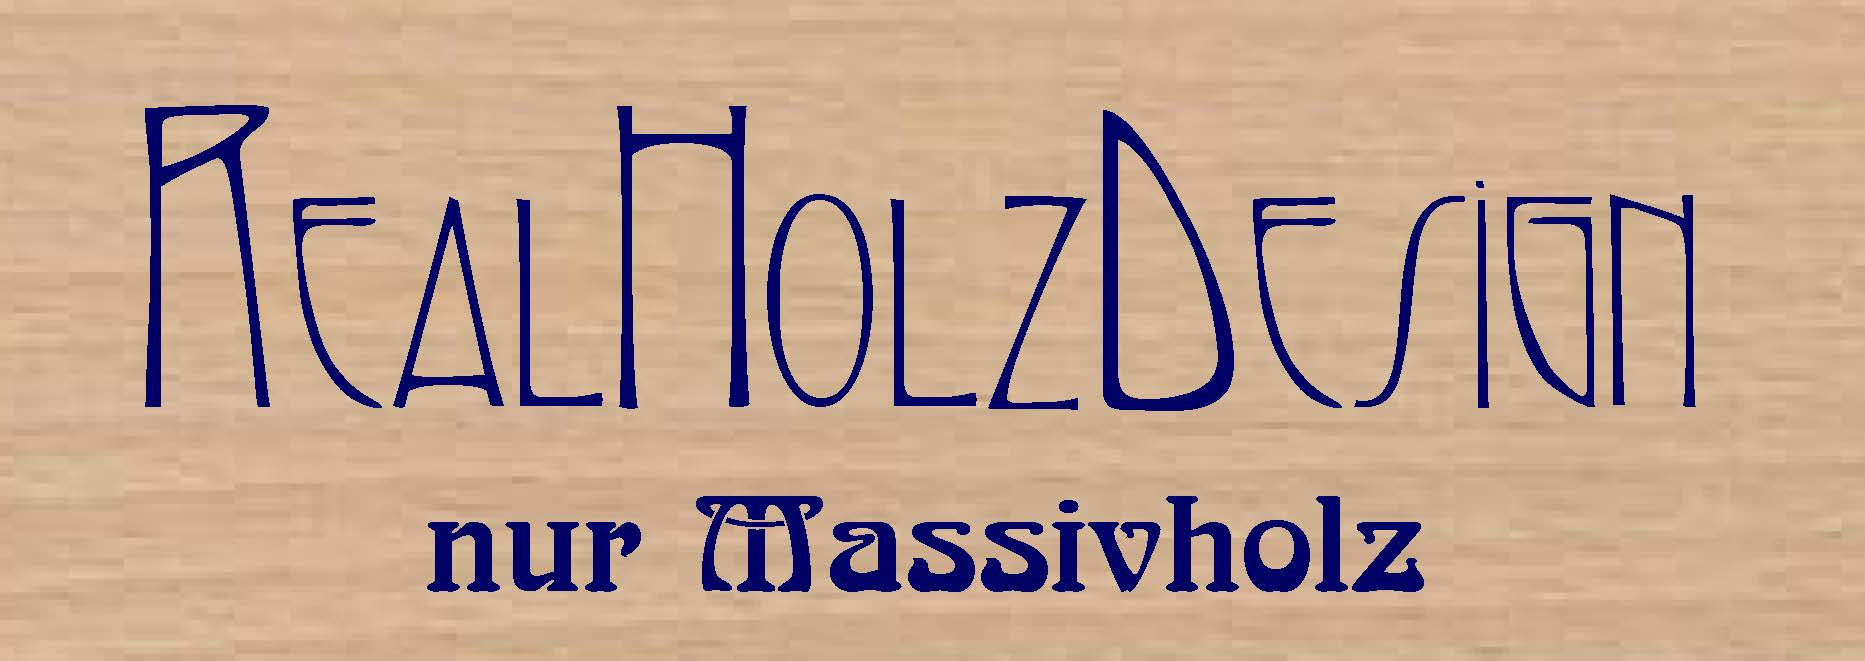 Massivholz in Vollendung